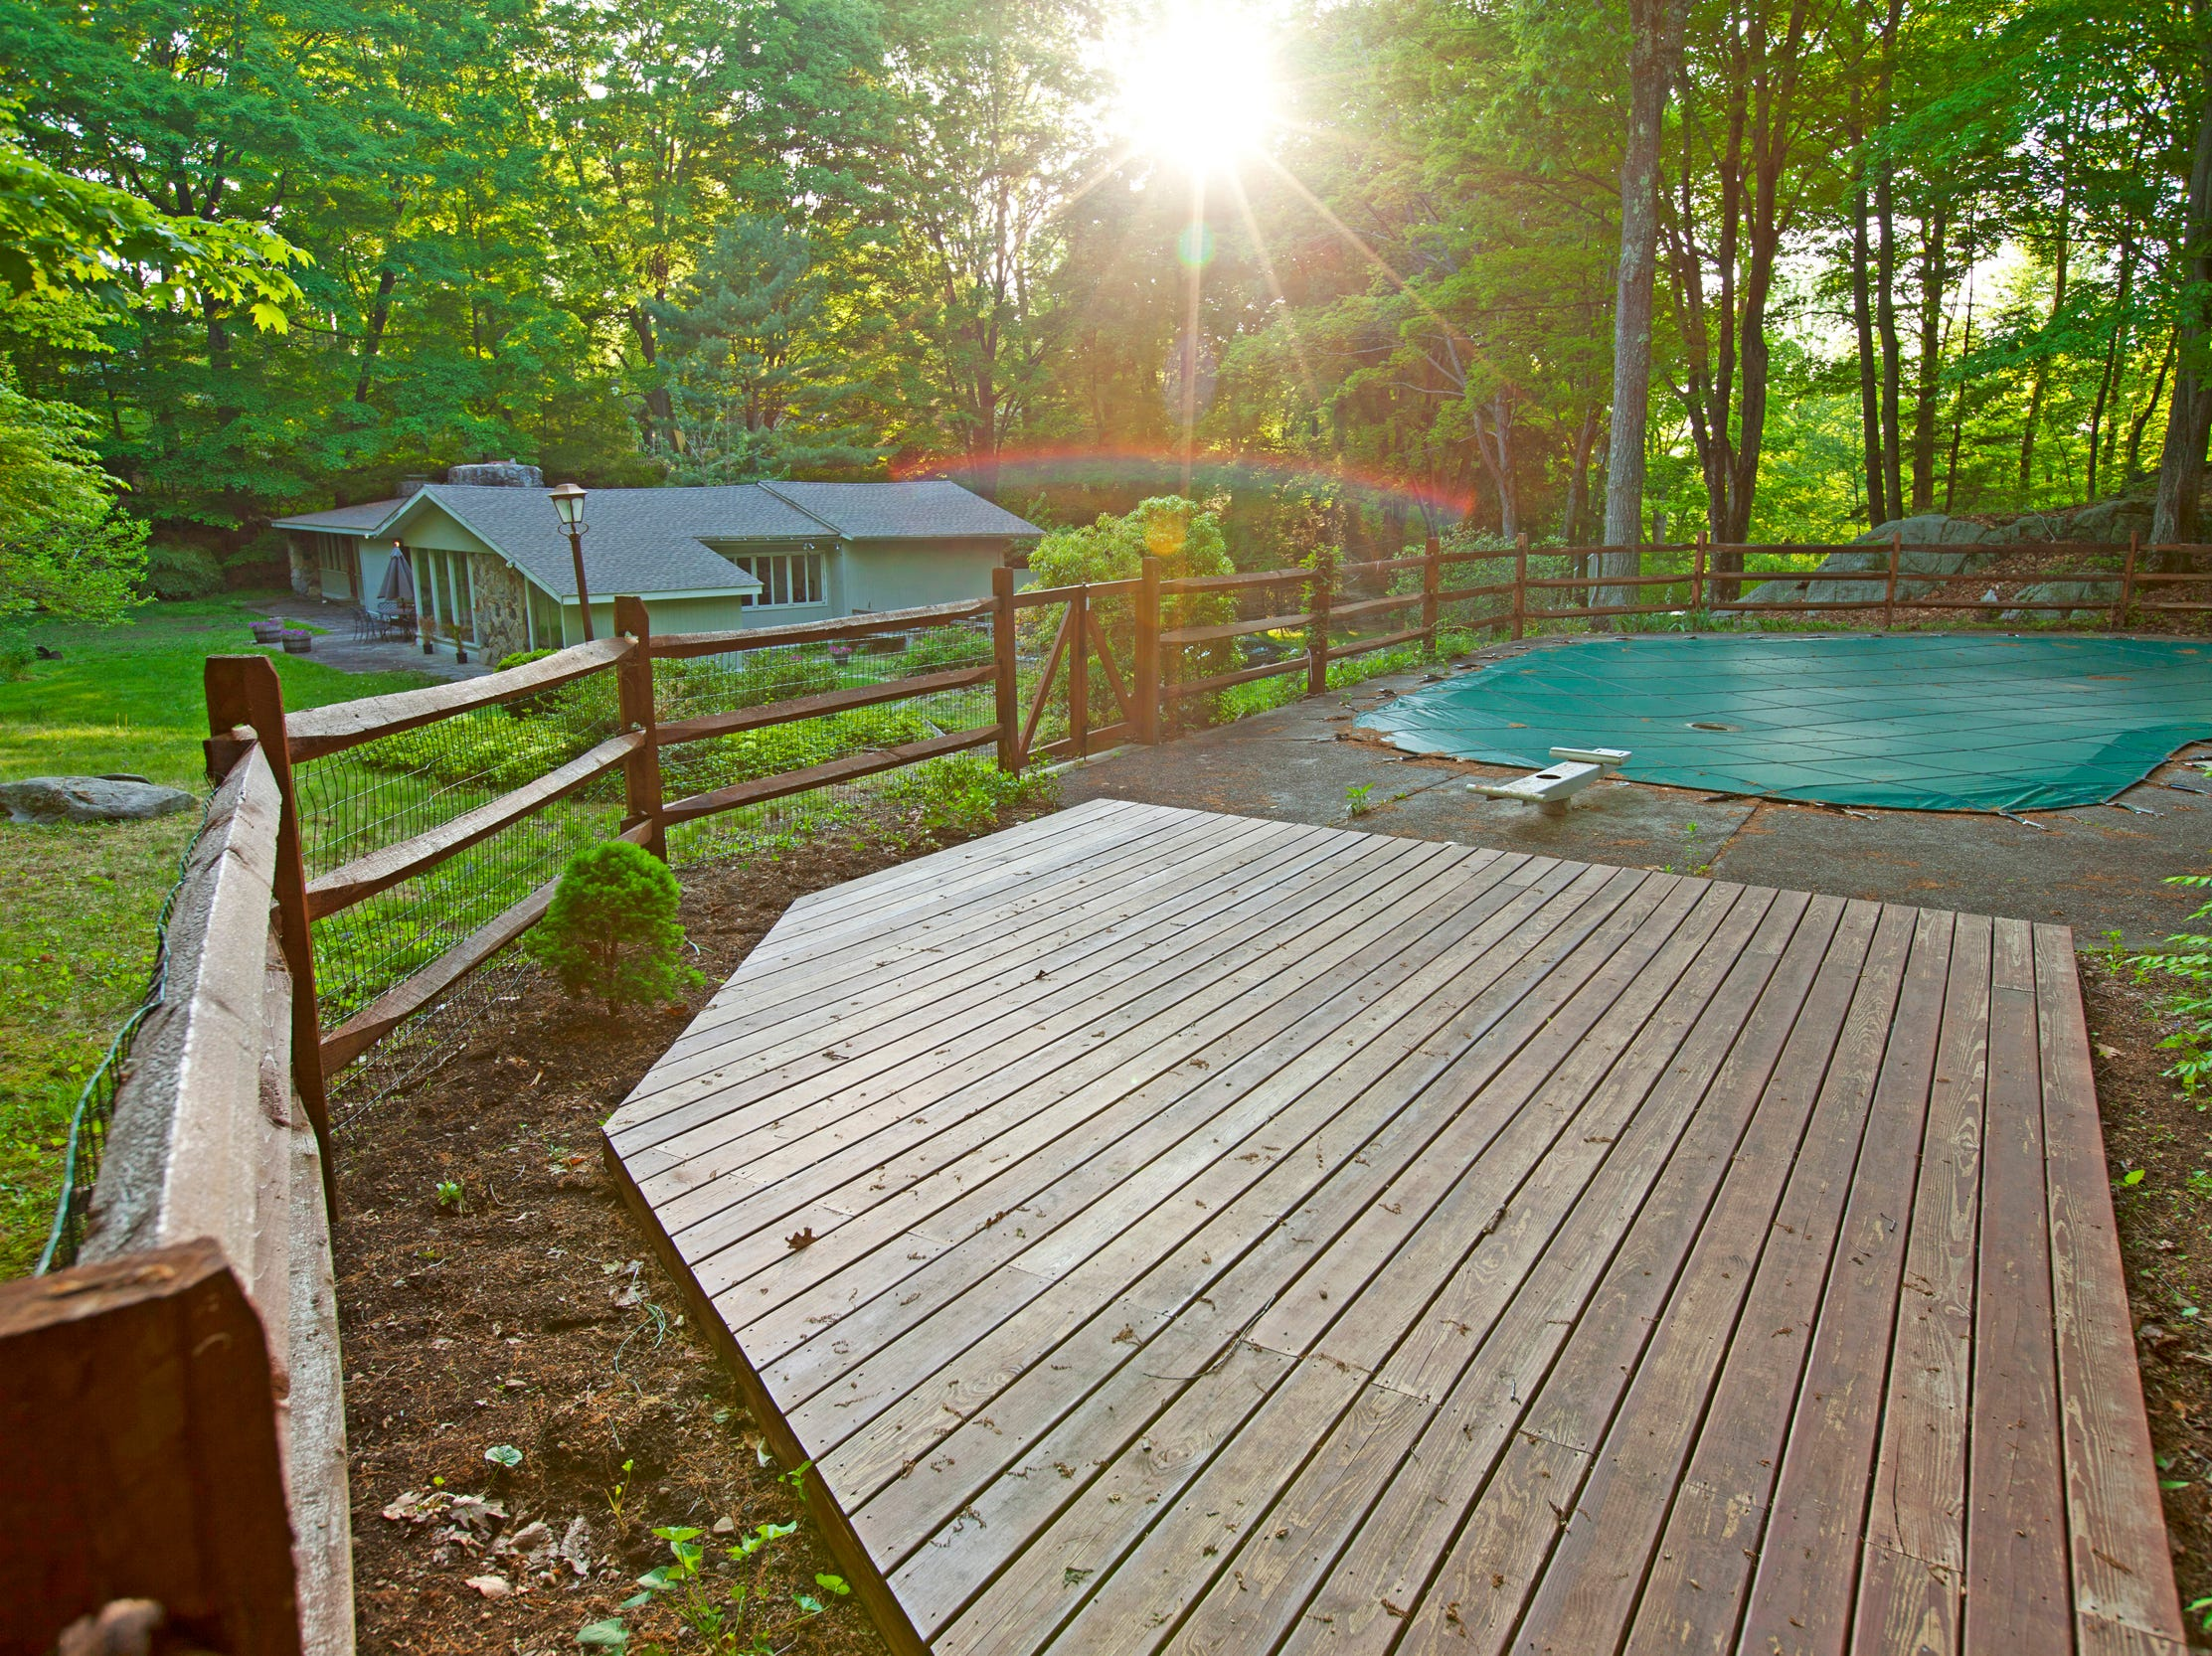 The home is one 4 acres of property in Pound Ridge